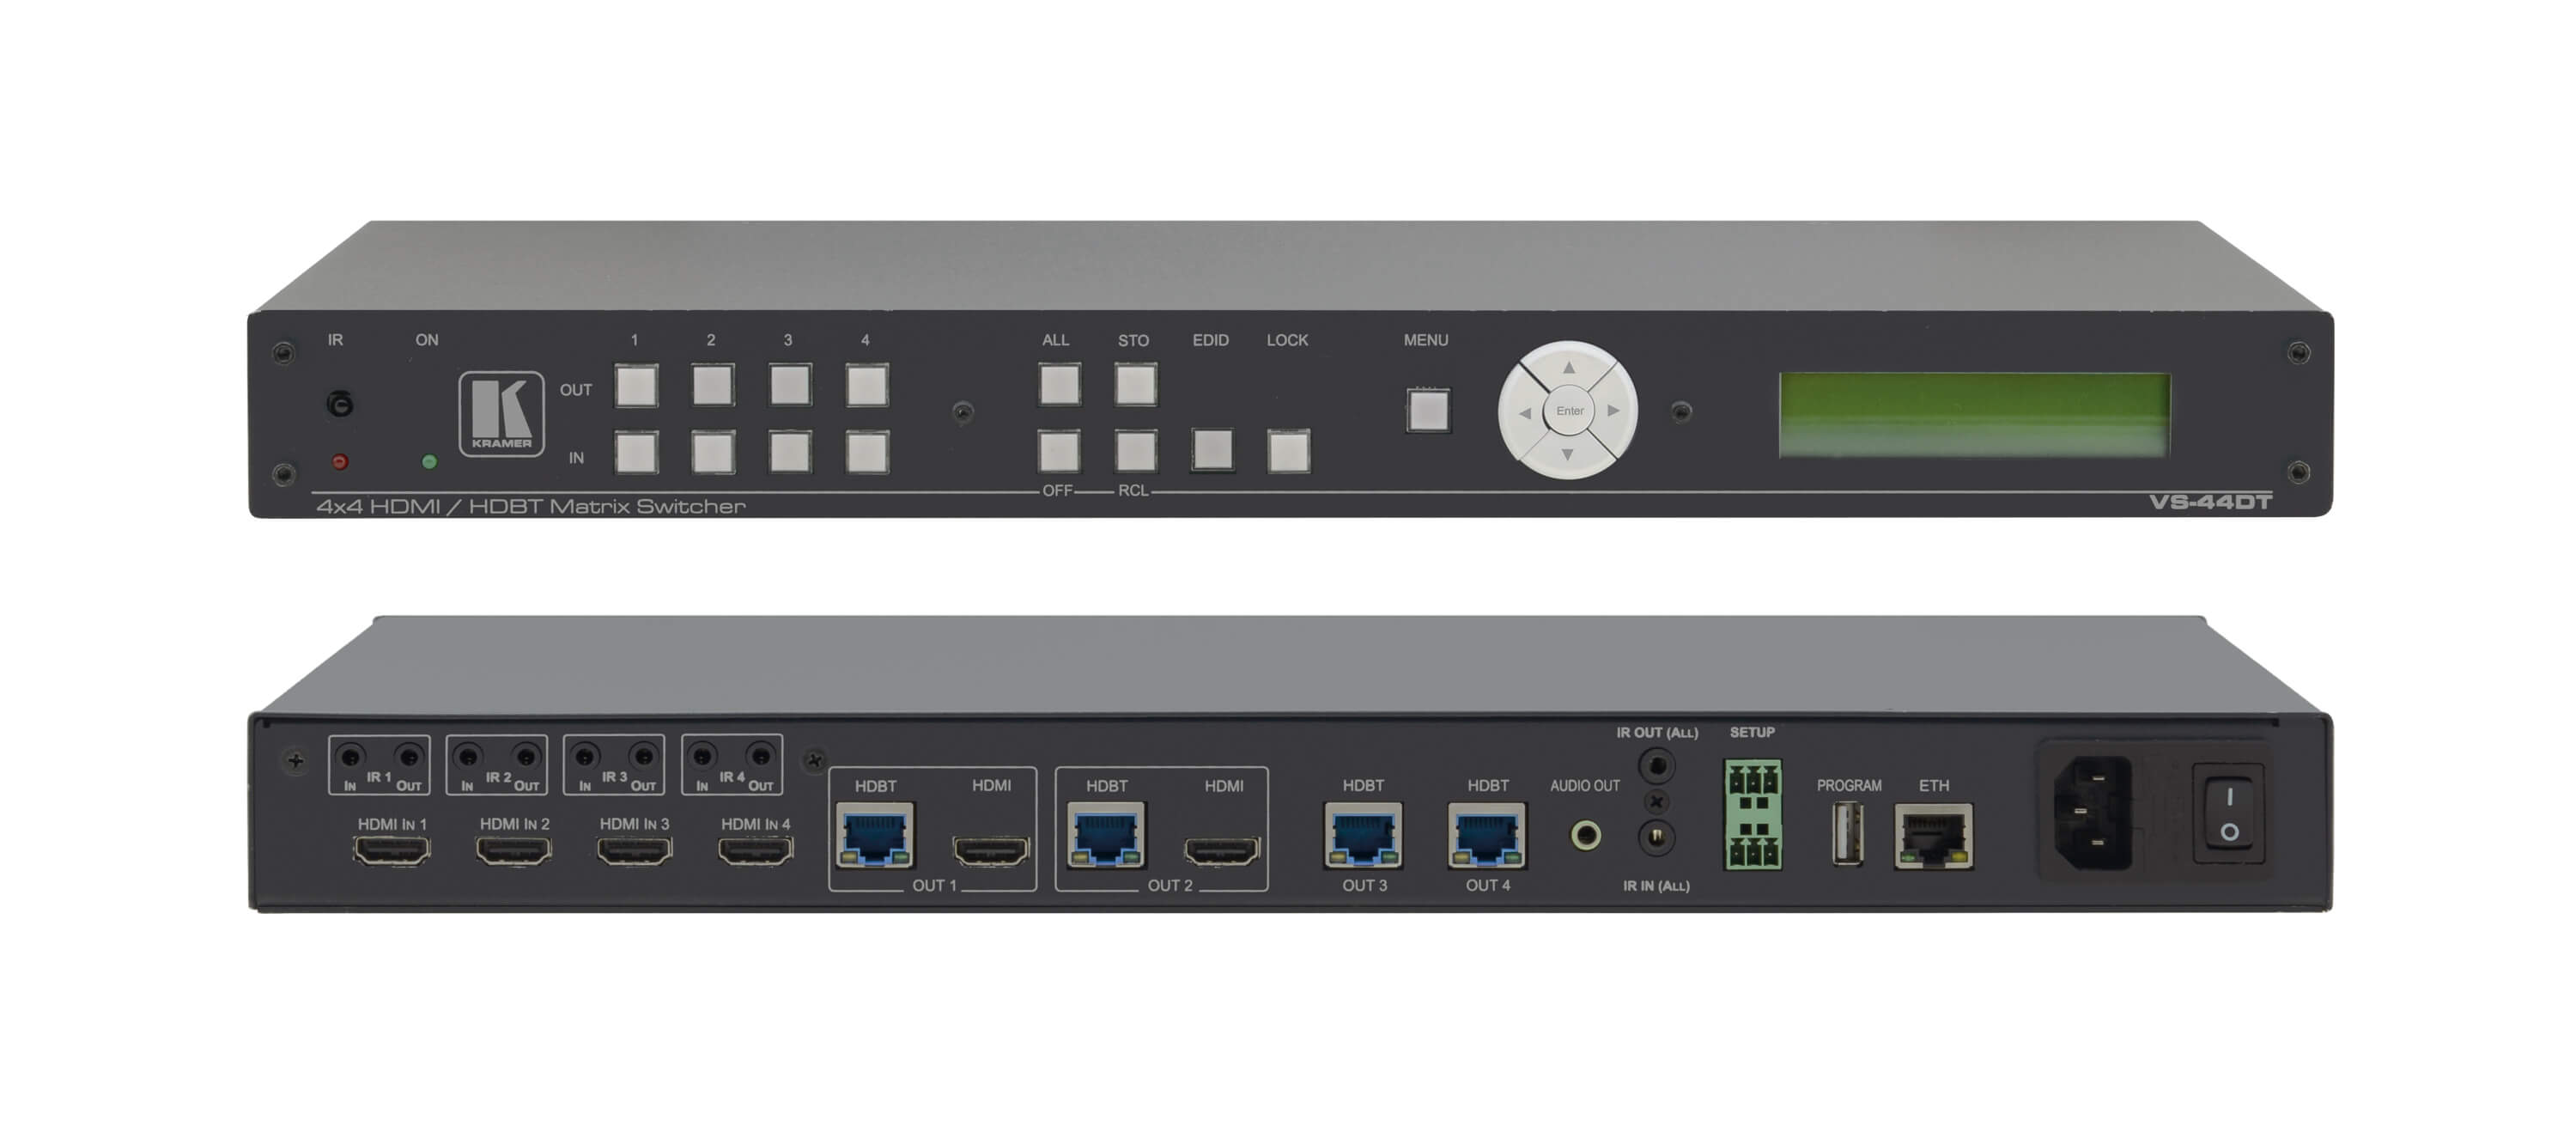 Kramer VS-44DT 4x4 4K60 4:2:0 HDMI/HDBaseT PoE Matrix Switcher